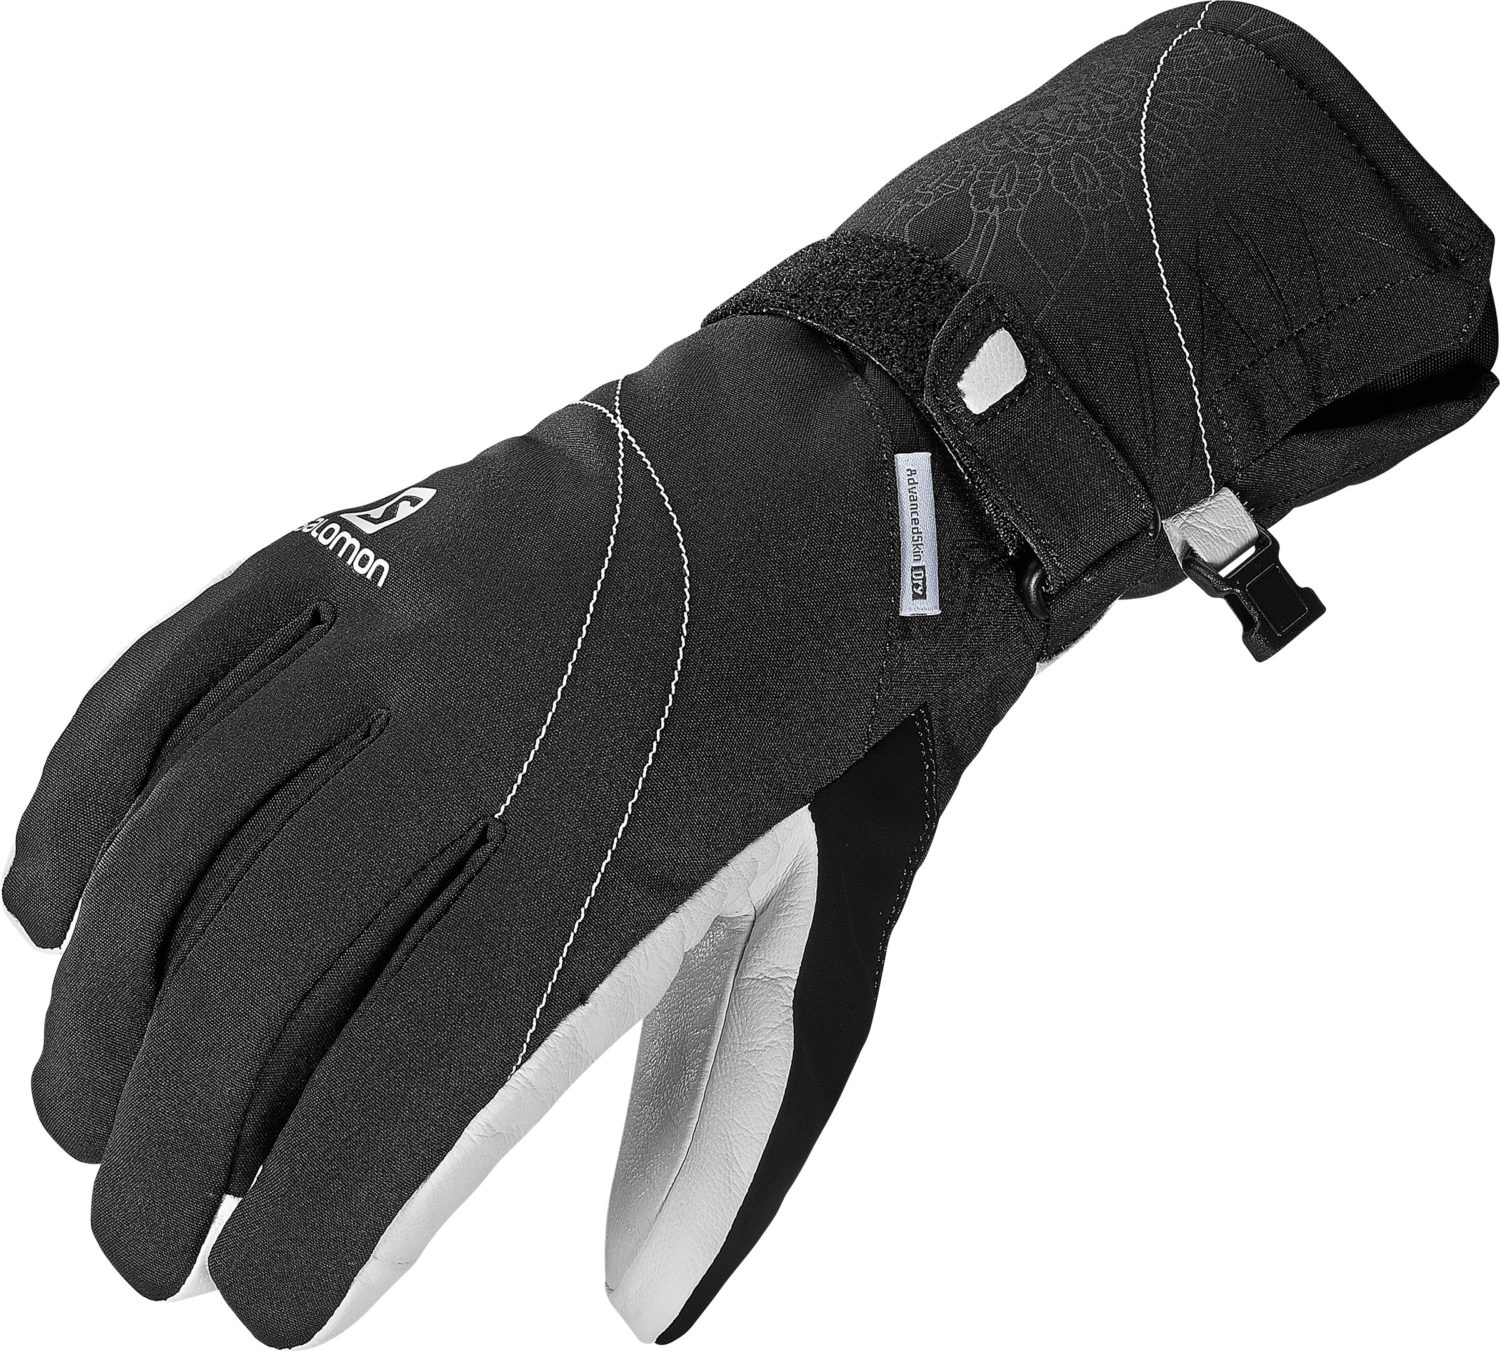 2017-18 Salomon Propeller Dry Womens Ski Glove Black and White